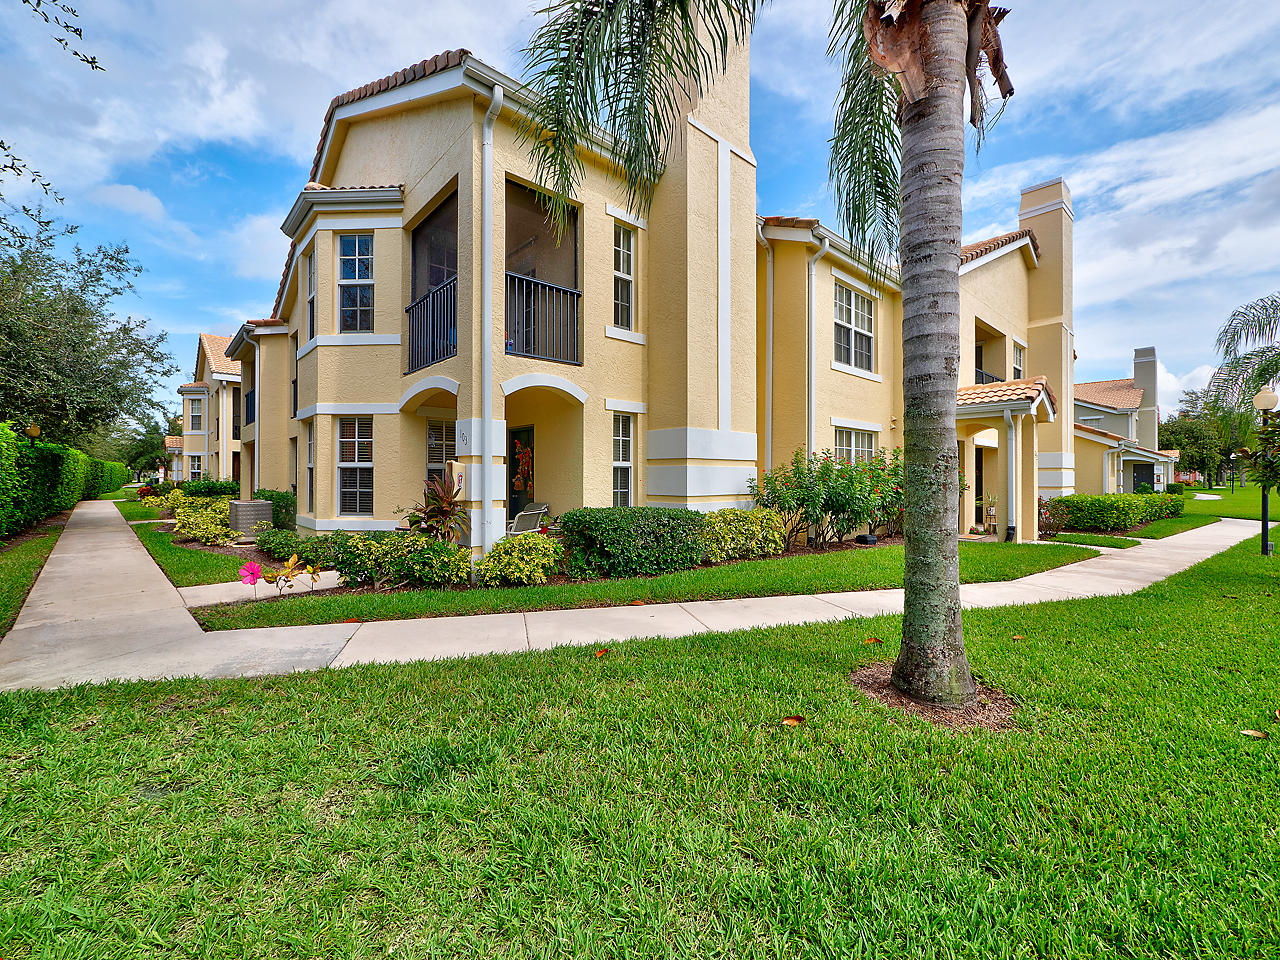 Wonderful opportunity to live in St Lucie West, at The Belmont! Well maintained by original owner, this condo truly shows like a model! Best 1st floor location with total privacy, corner end unit features 2BR/2BTH with tile throughout! Large family & dining room with bay window, Light & Bright kitchen with granite countertop, large pantry, snack bar & eat in kitchen space! Designer features include custom window treatments and a beautifully hand painted mural in Masterbath! Walk in MB shower & sep garden tub!  Granite vanities! Ceiling fans!  Laundry room with 2017 Maytag Appliances! Relax and unwind on your cozy private patio located just off the kitchen and/or Master Bedroom! Don't wait on this one!  Gated Community w/Pool, Spa, Clubhouse, Athletic Center & Bus. Ctr, Tennis & Kids Fun C